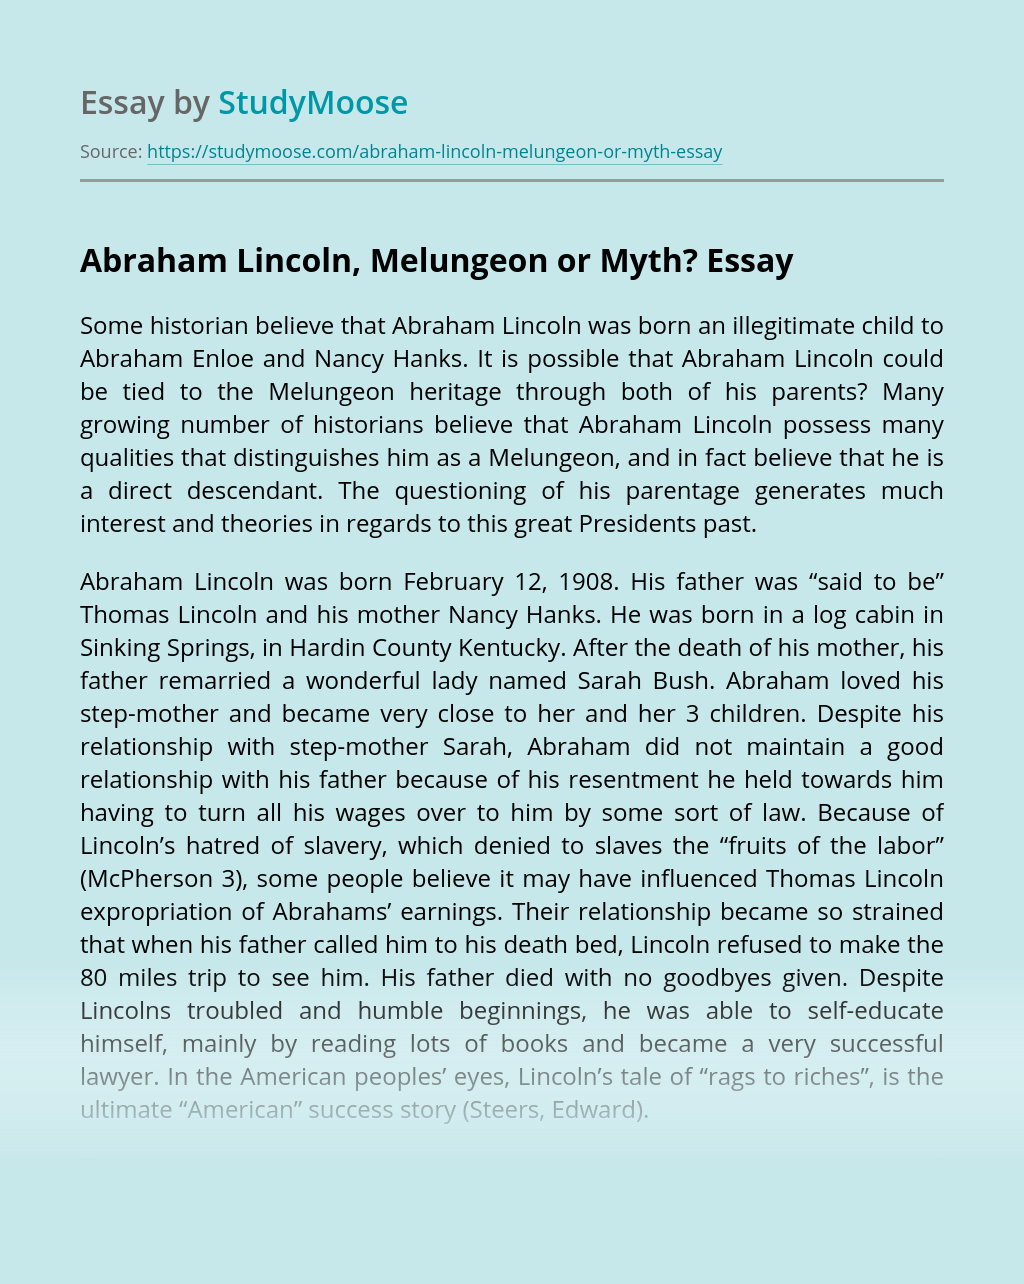 Abraham Lincoln, Melungeon or Myth?